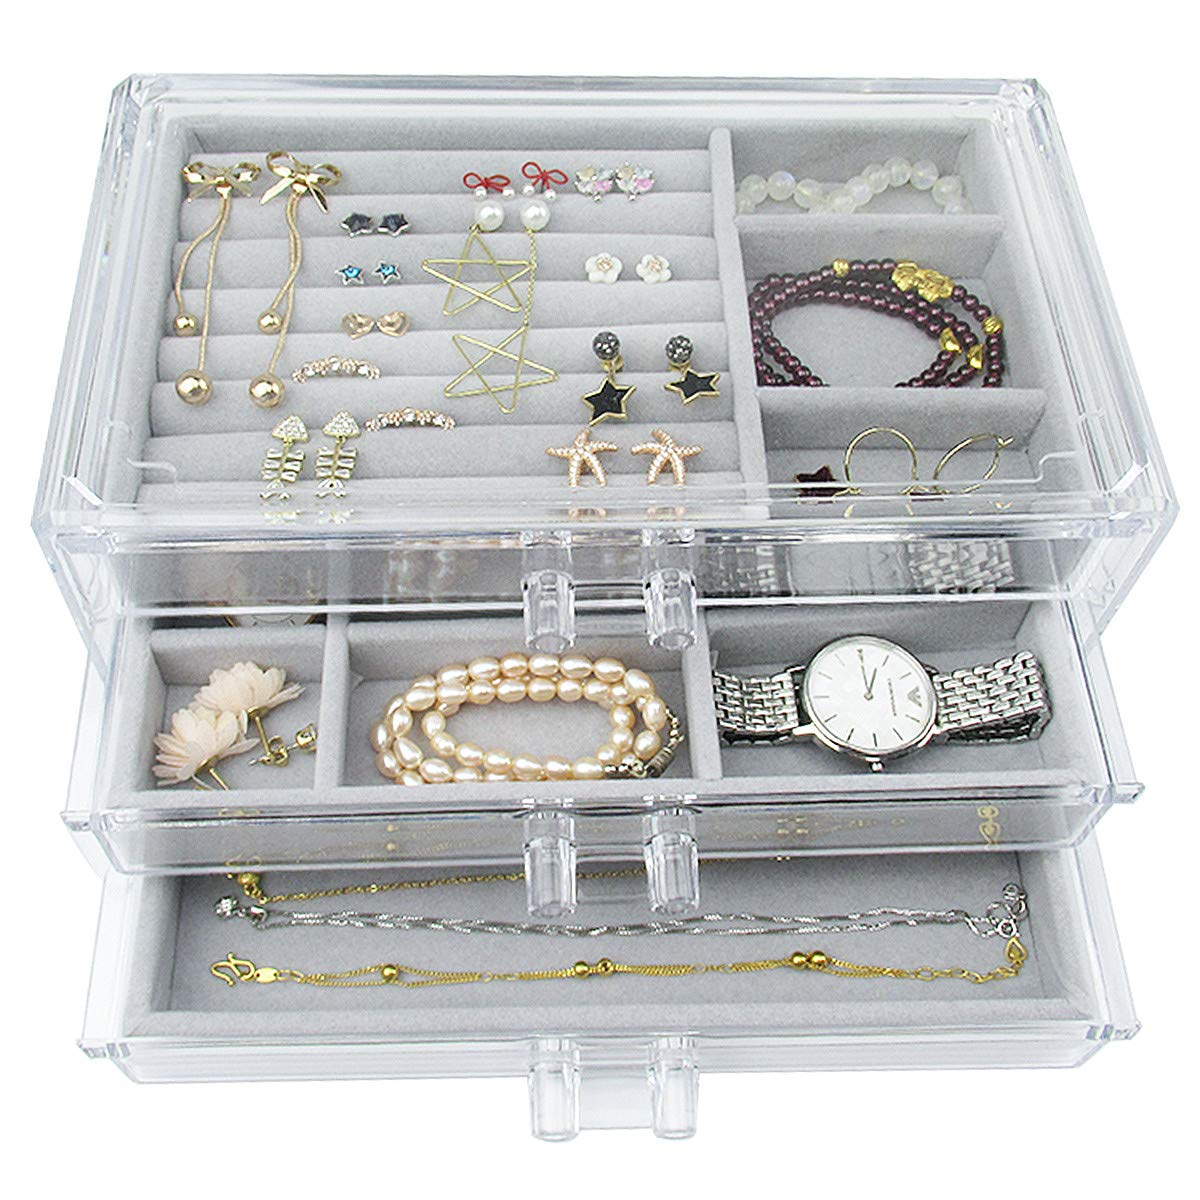 Acrylic Jewelry Box 3 Drawers, Velvet Jewellery Organizer | Earring Rings Necklaces Bracelets Display Case Gift for Women, Girls